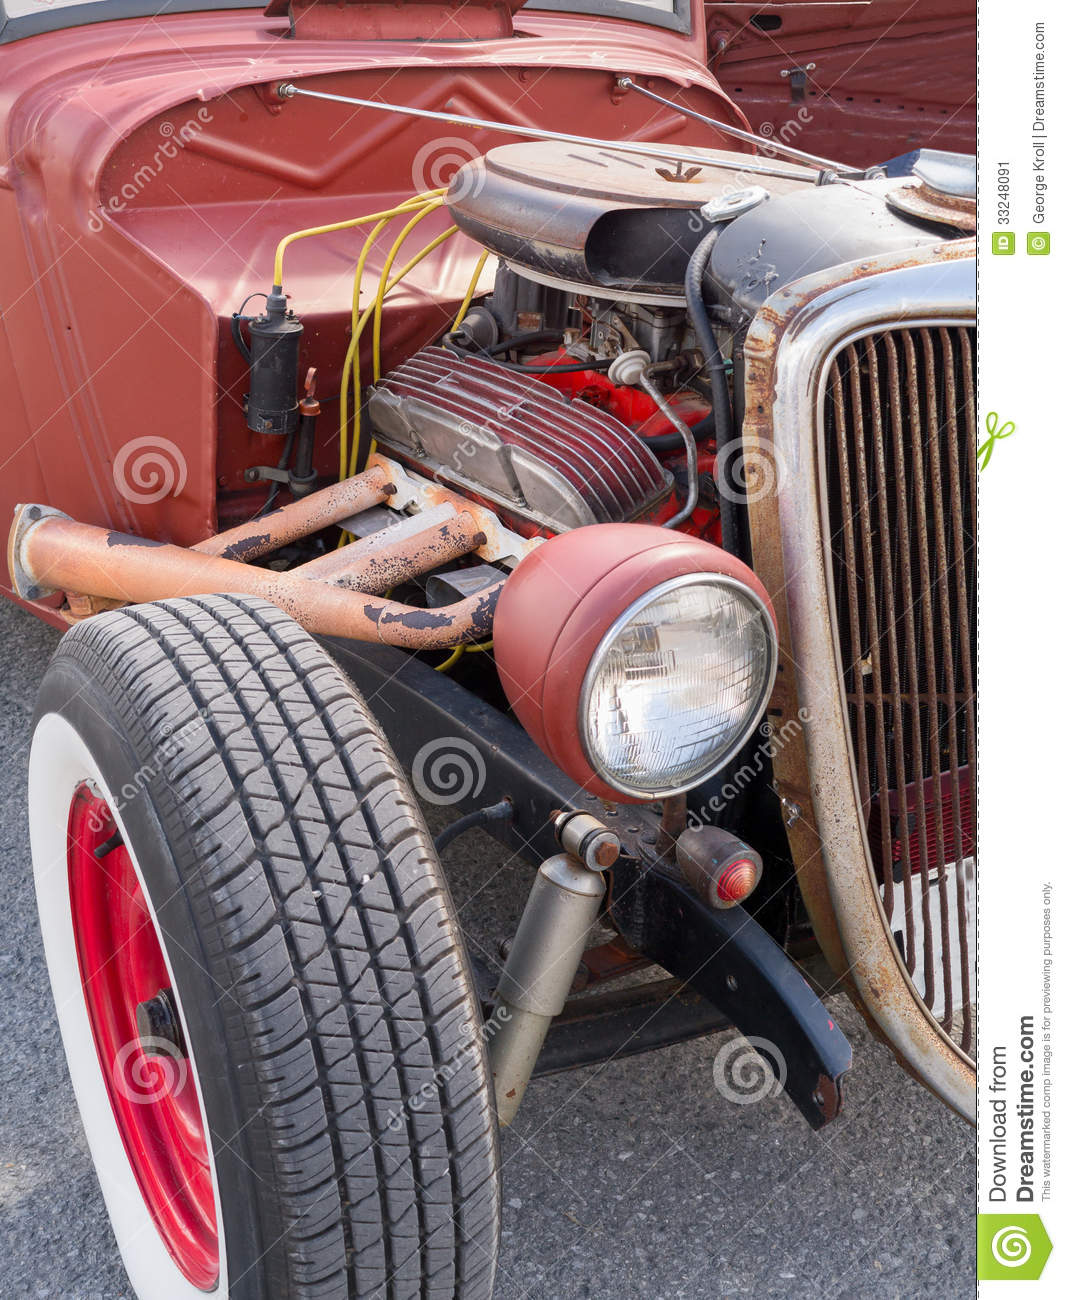 Old School Hot Rod stock image. Image of engine, compartment - 33248091